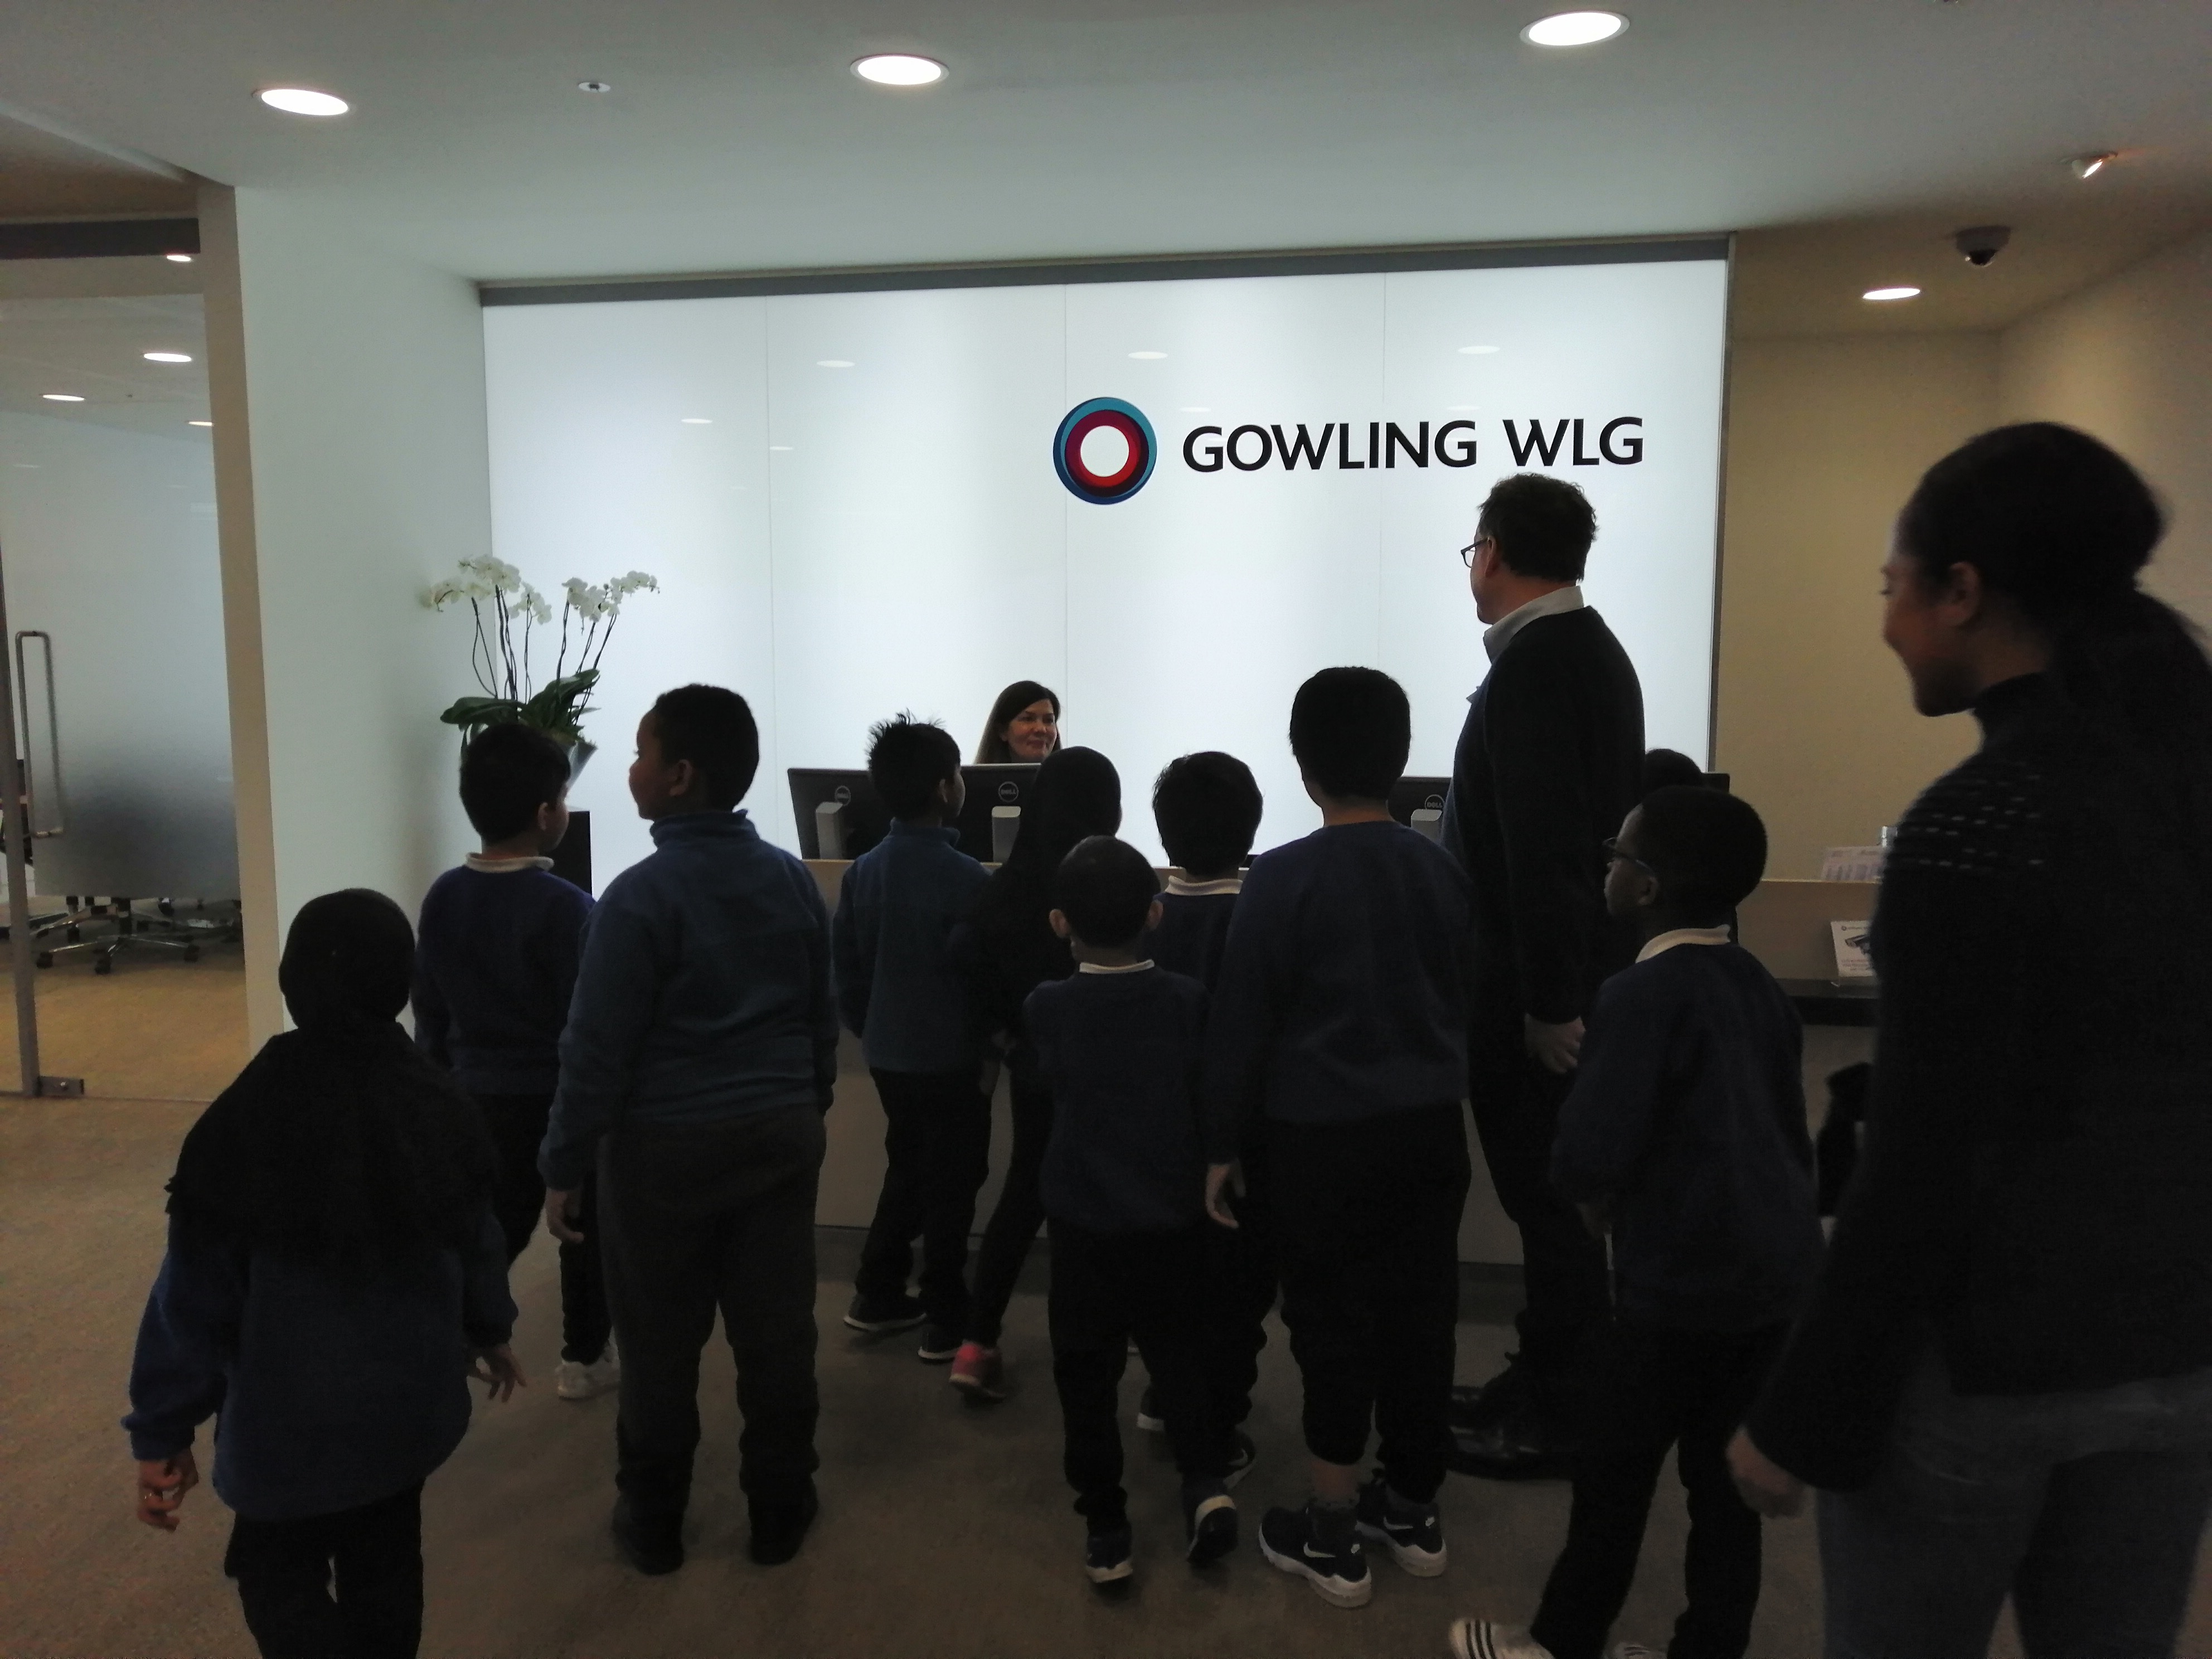 Students apply their Presenting skills as they take on the role of Gowling WLG clients at reception.